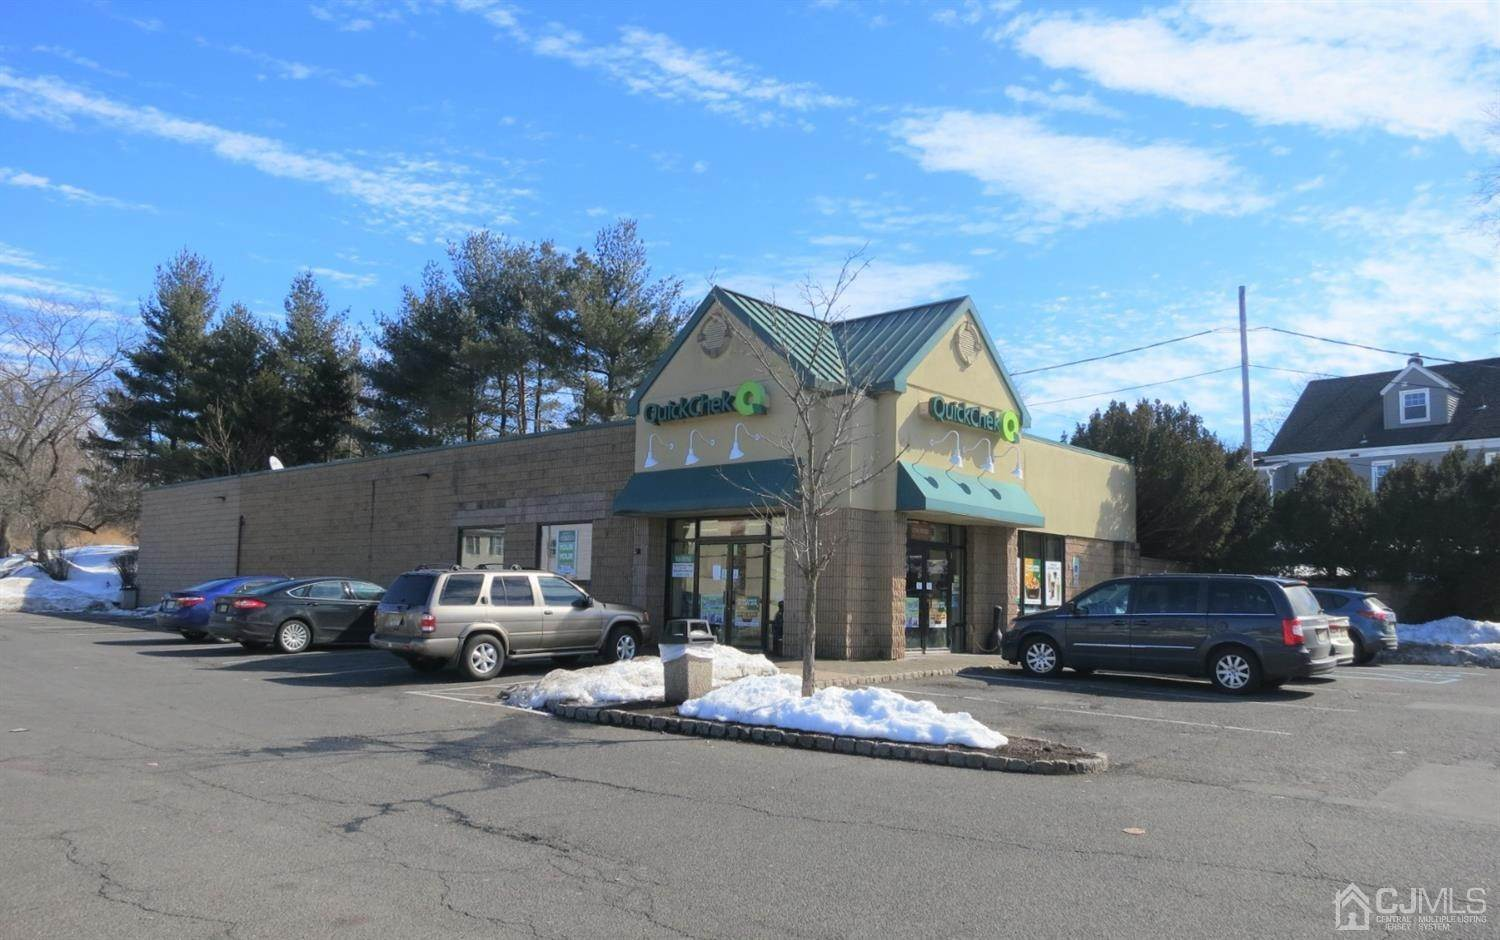 Commercial / Office for Sale at 605 River Road Piscataway, New Jersey, 08854 United States